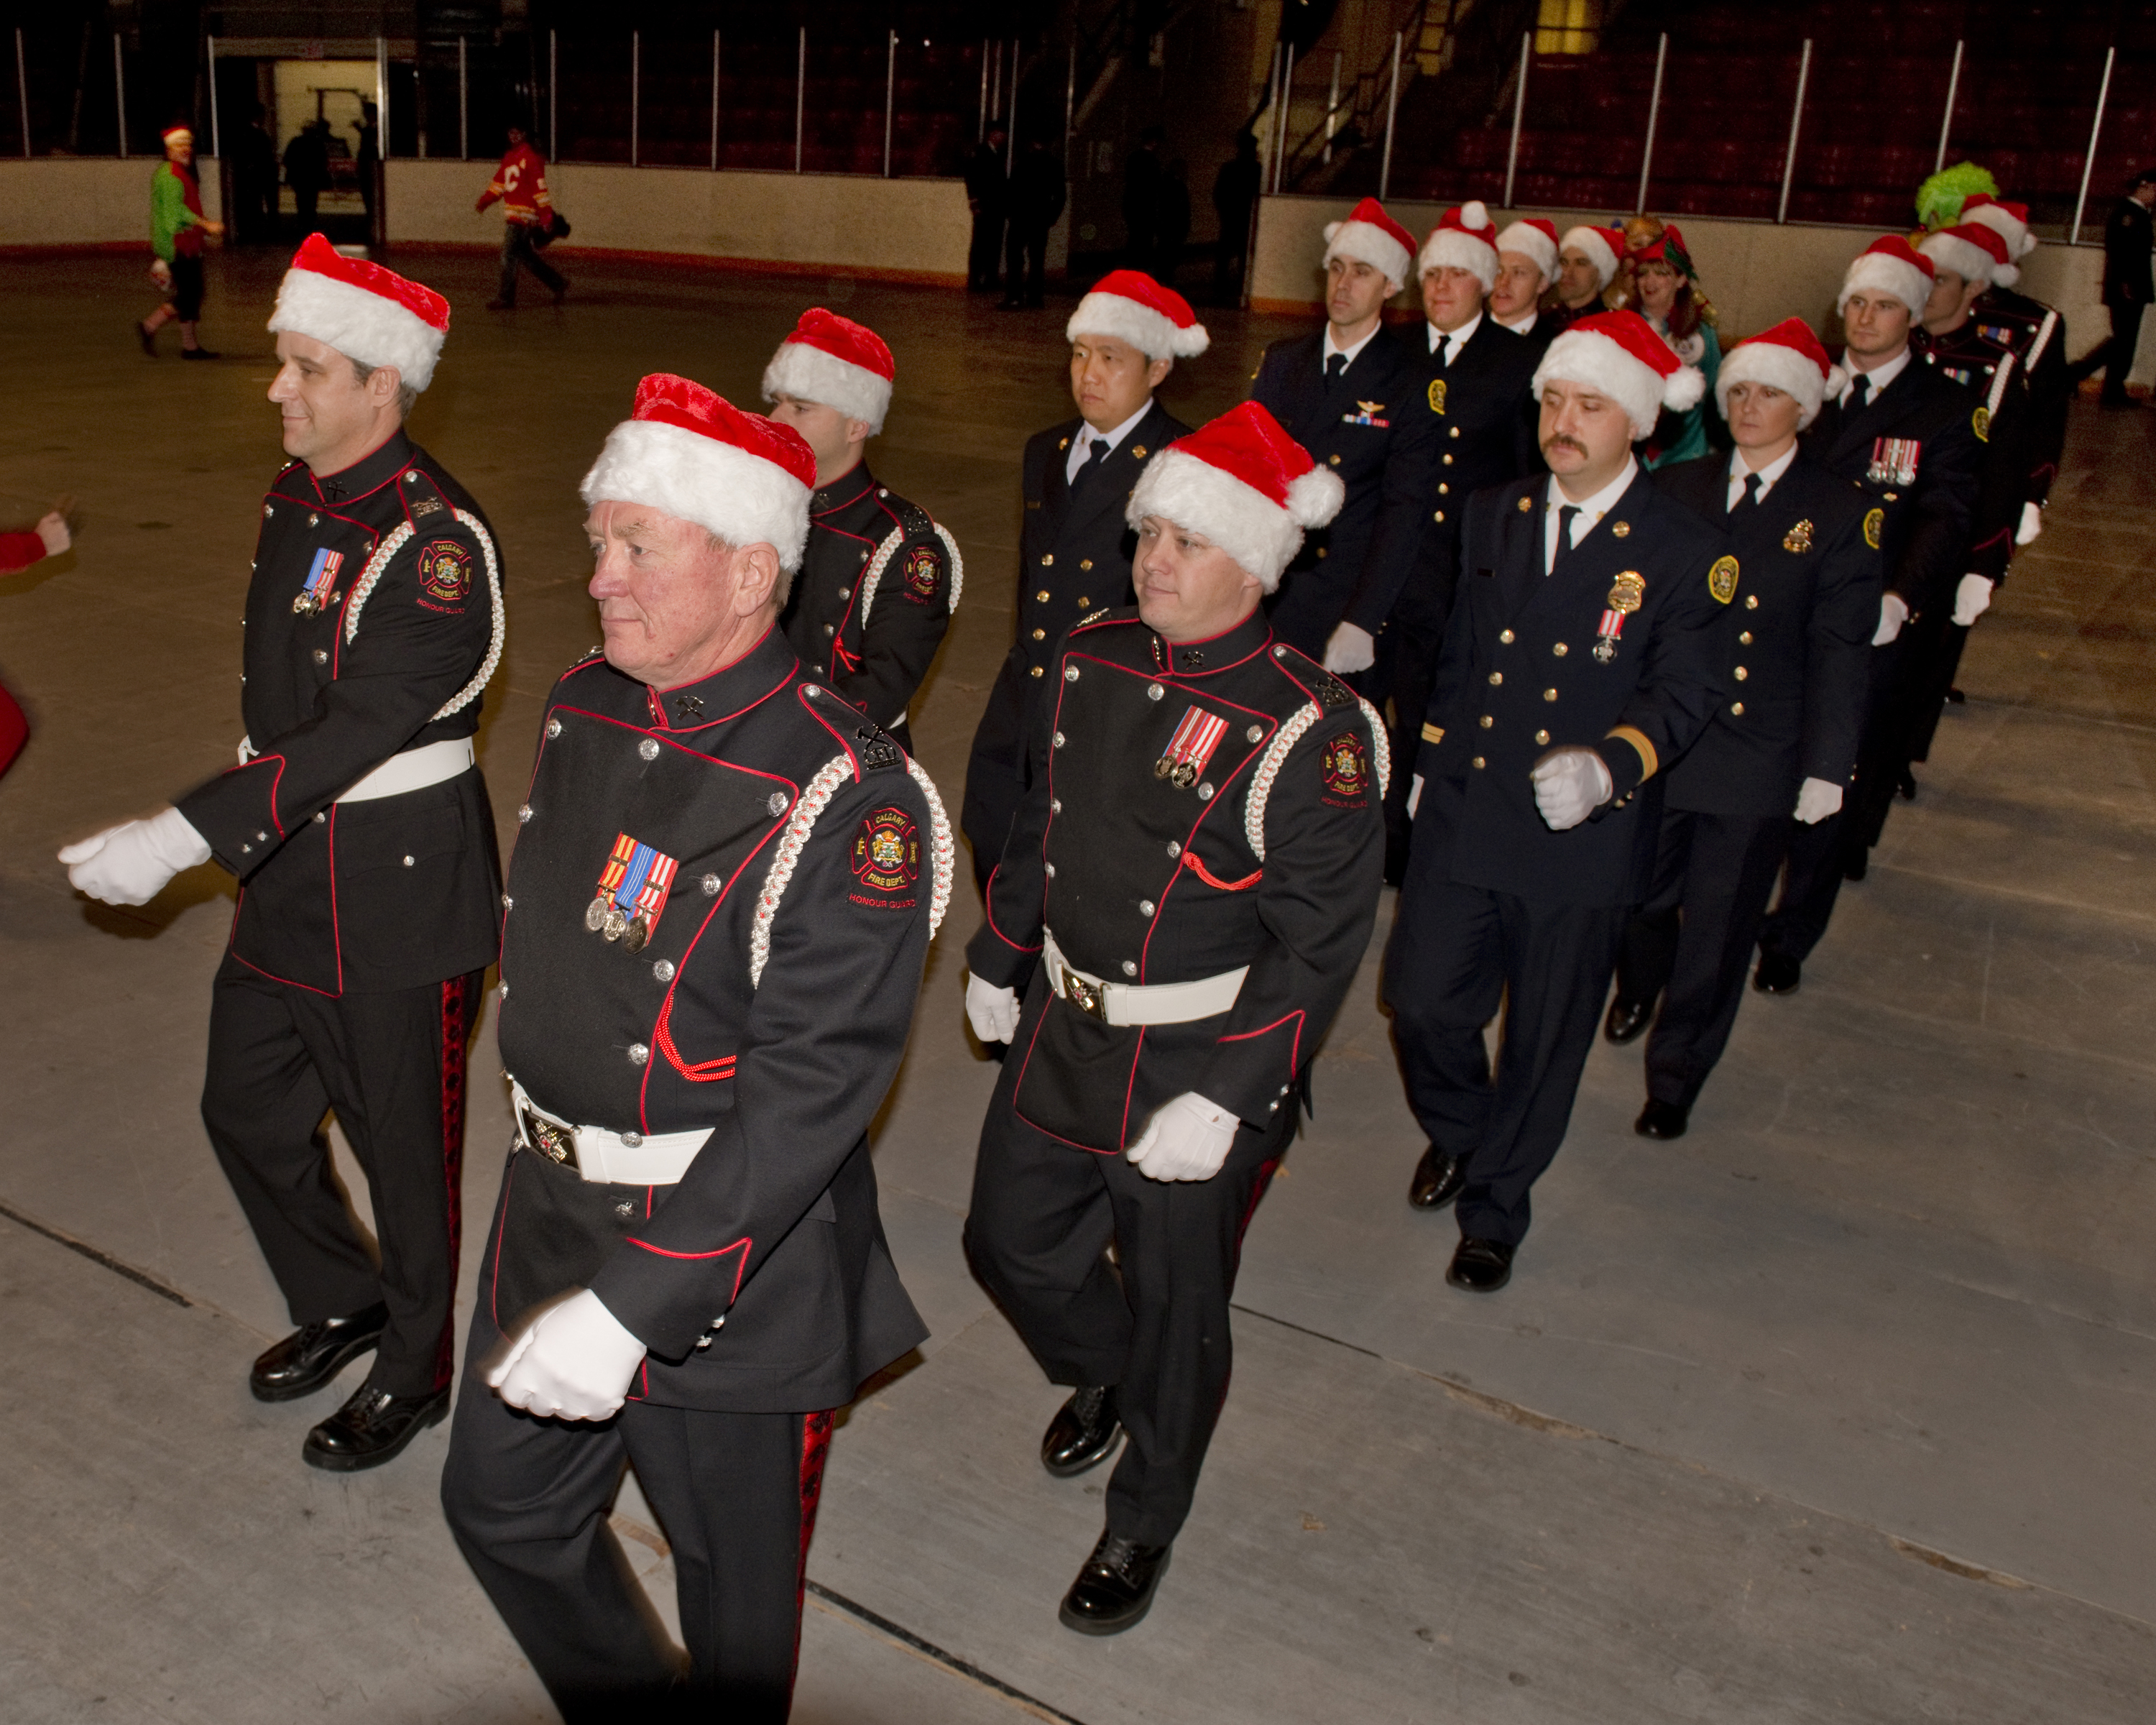 Honour Guard lead a march of uniformed members at Kids Christmas Party 2015